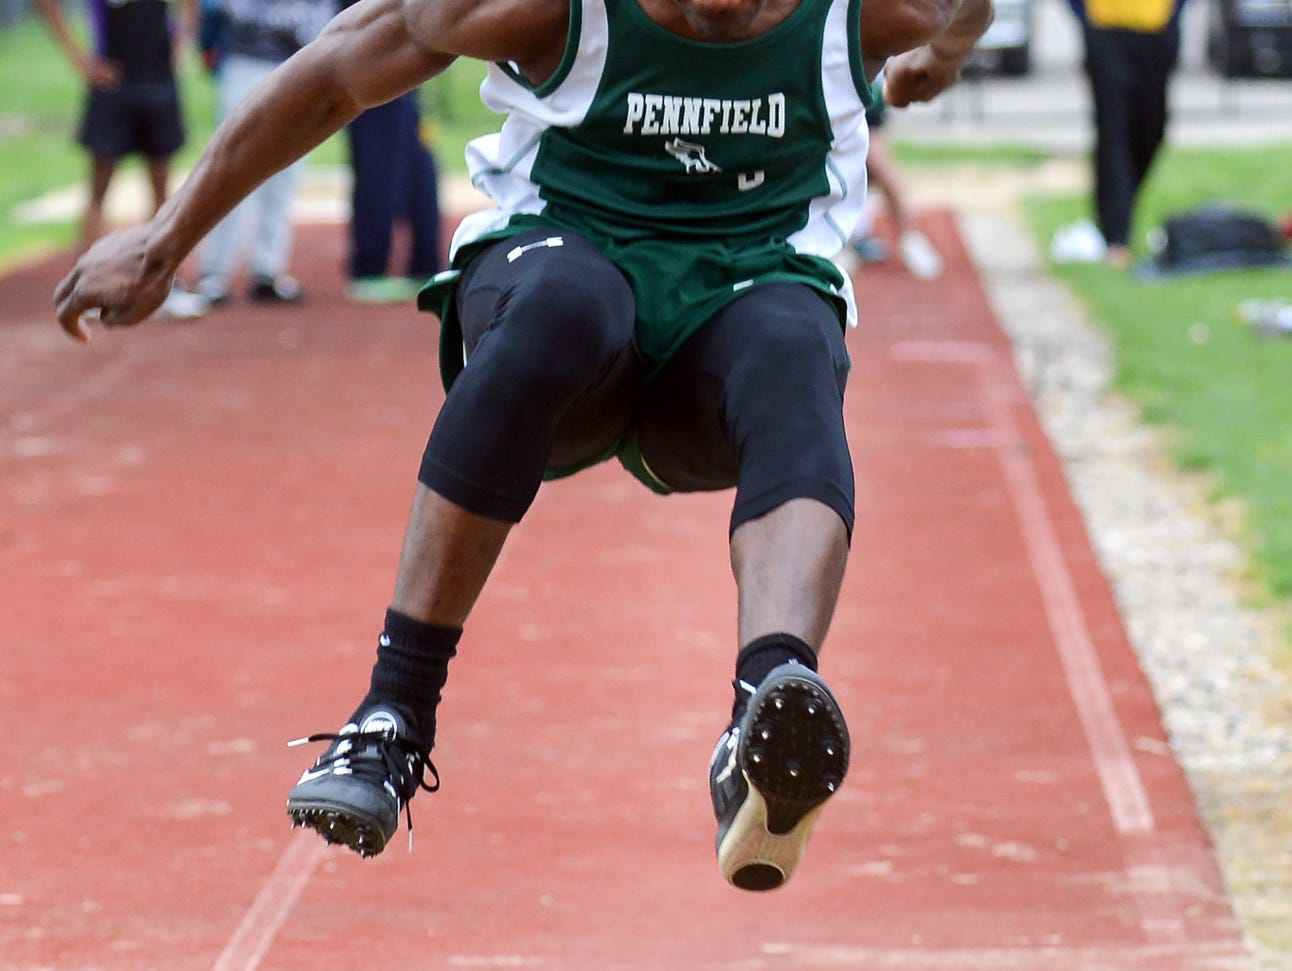 Parris Bolden of Pennfield participates in the long jump during the 2016 All City track meet held at Harper Creek High School Friday evening.